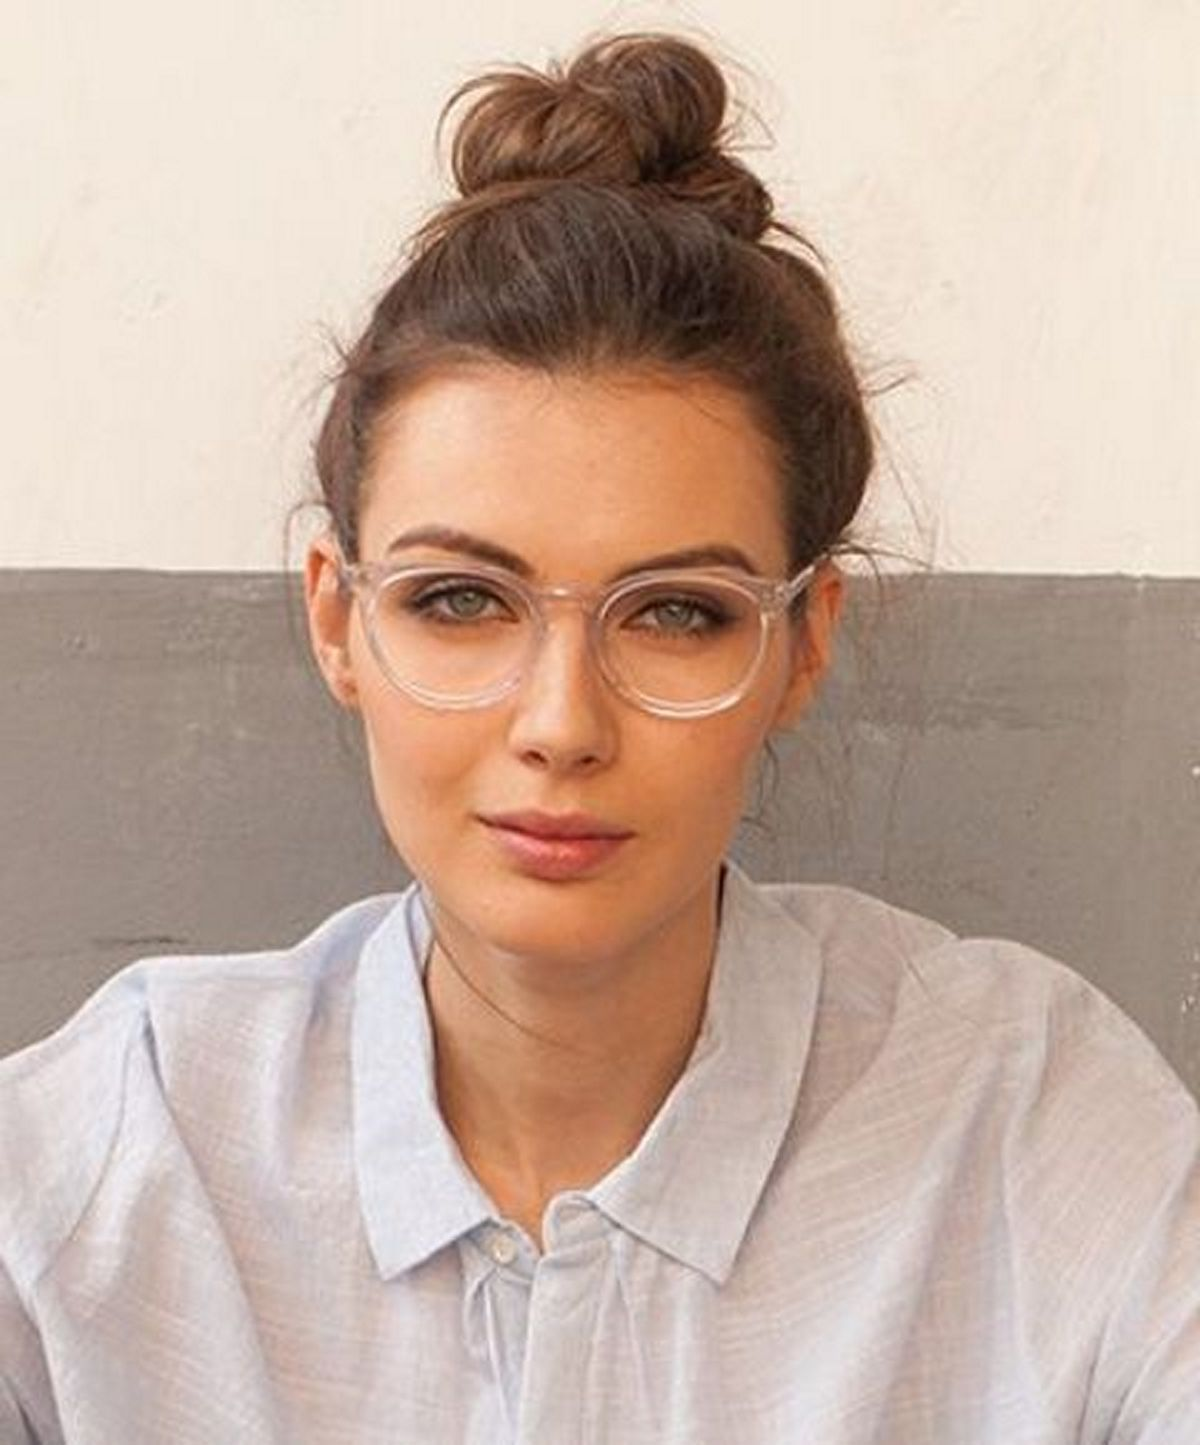 c4684f7a53 Clear Glasses Frame For Women s Fashion Ideas  Transparent  Eyeglass (16)